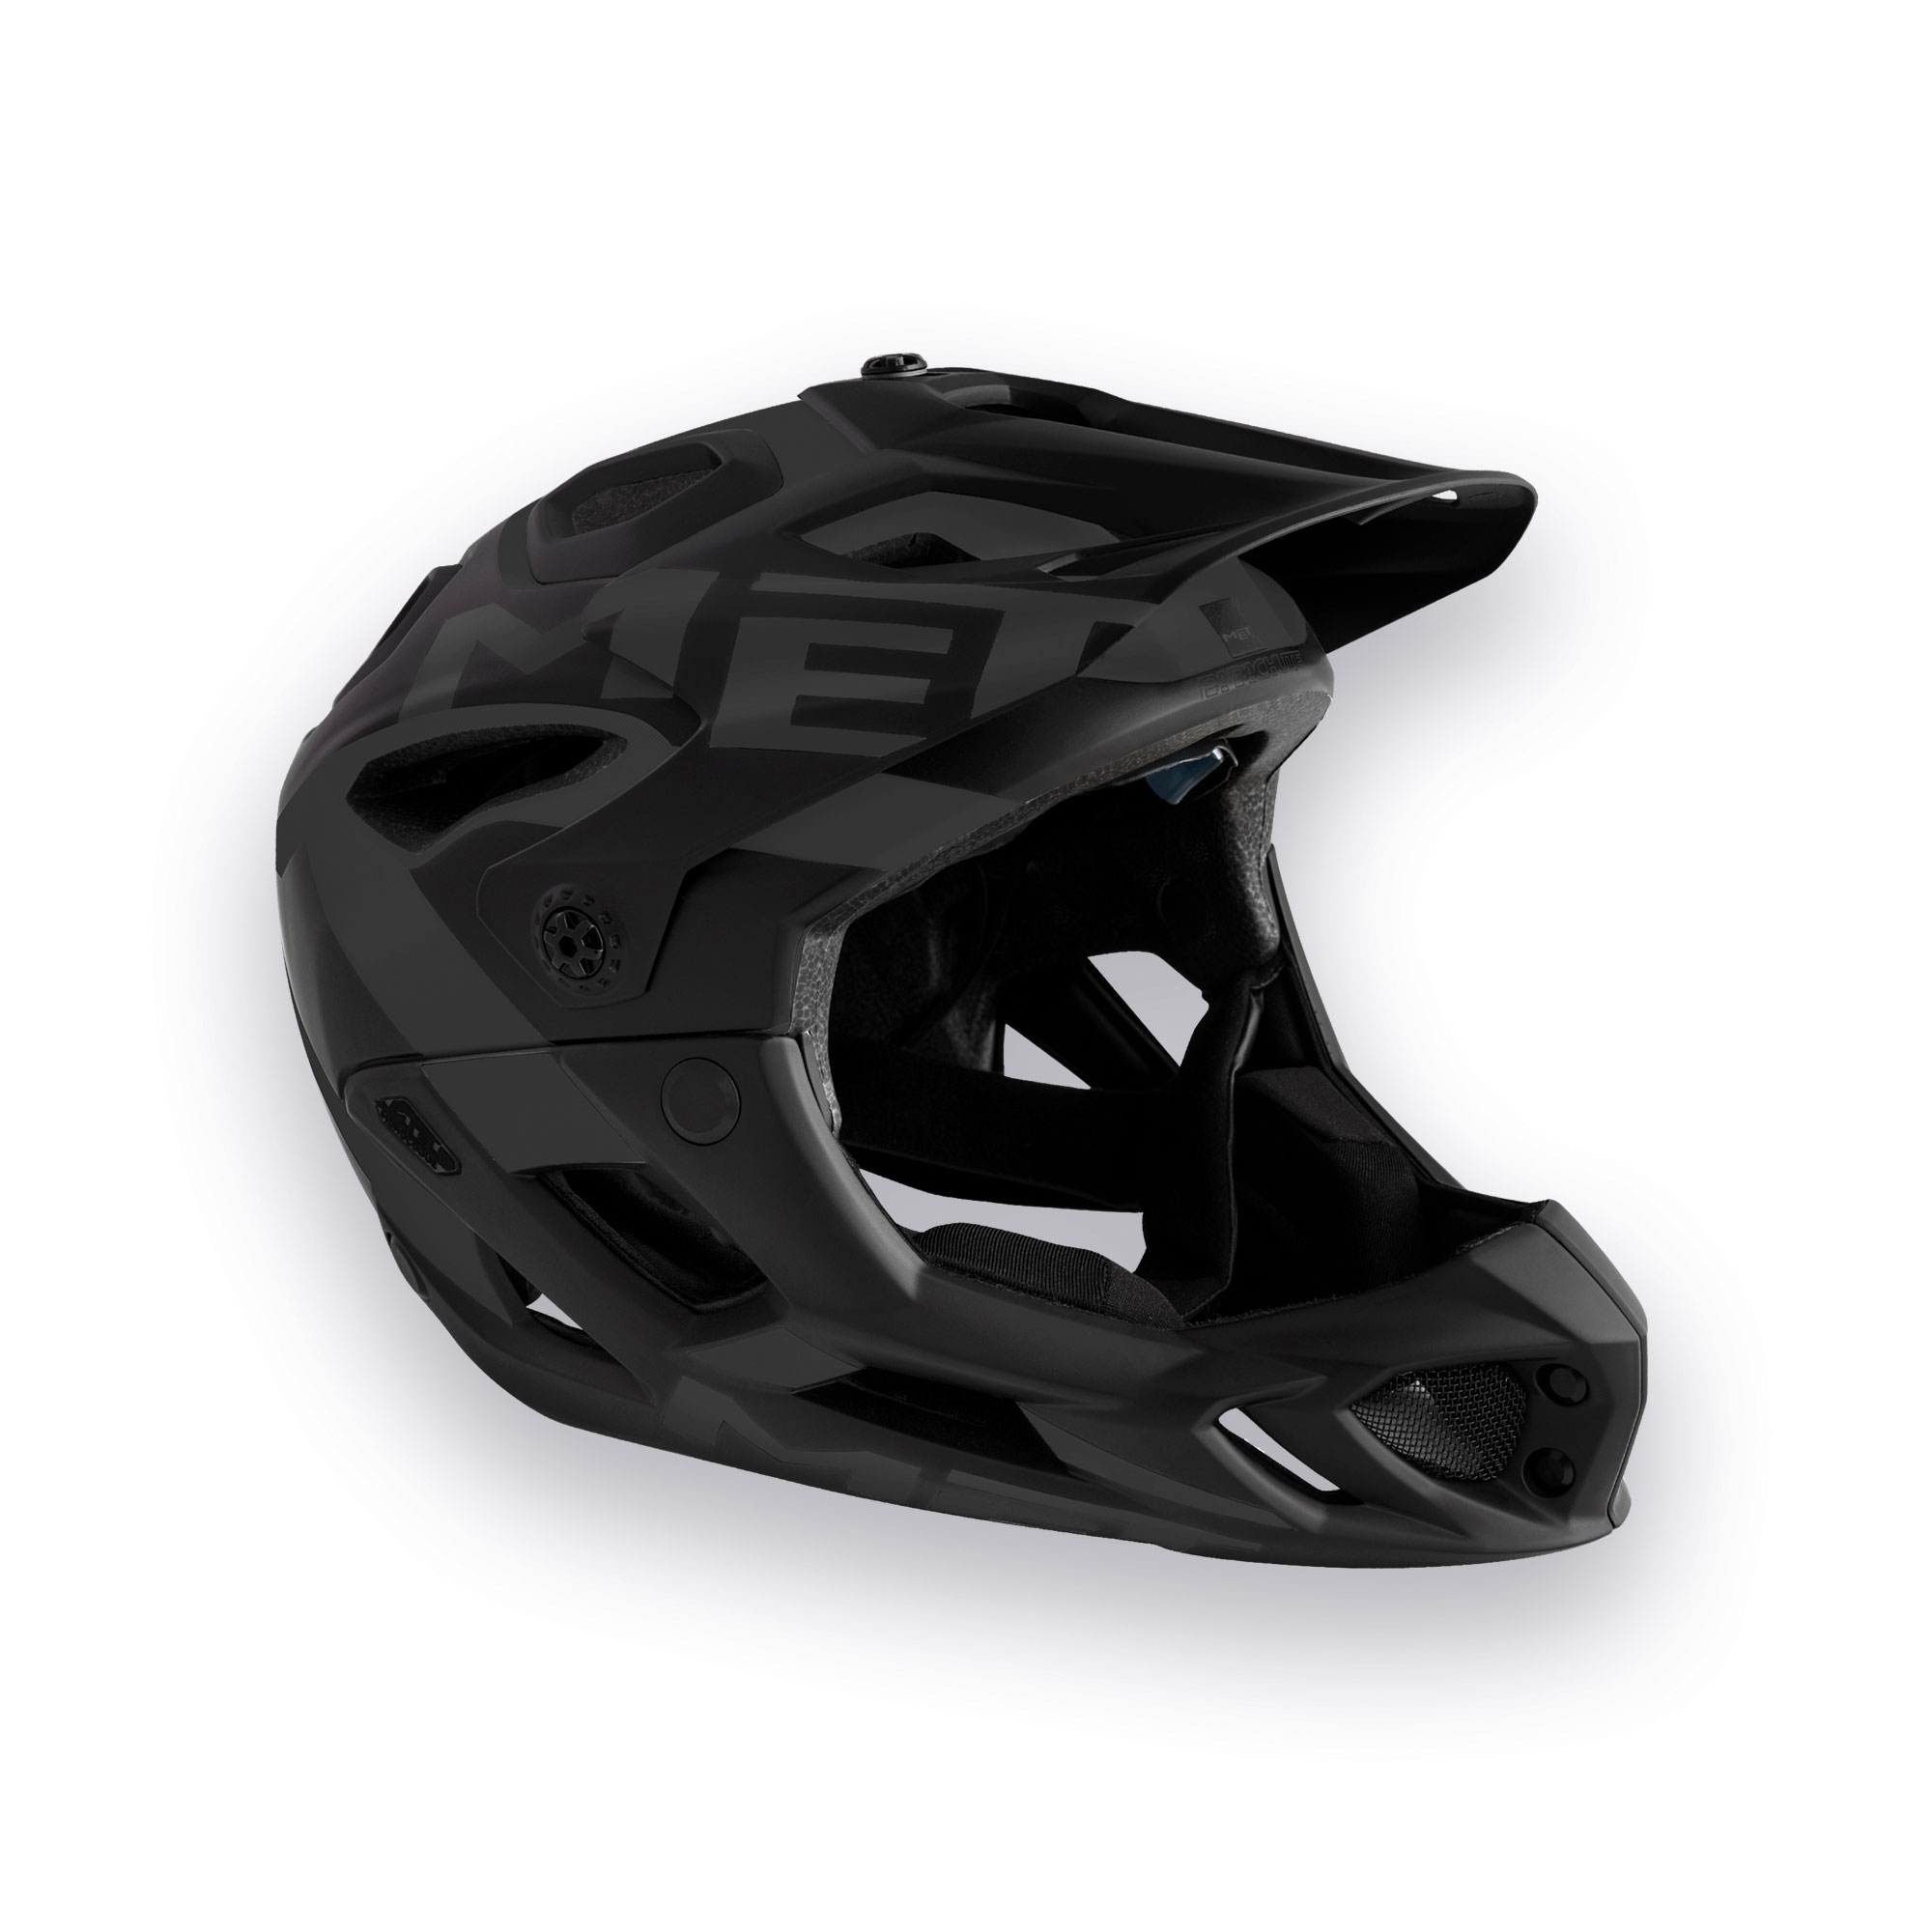 Parachute - Parachute is the trailblazer for a new category of helmets purpose-built for Enduro mountain biking.It combines the protection of a full face helmet with low weight, high ventilation and comfort.